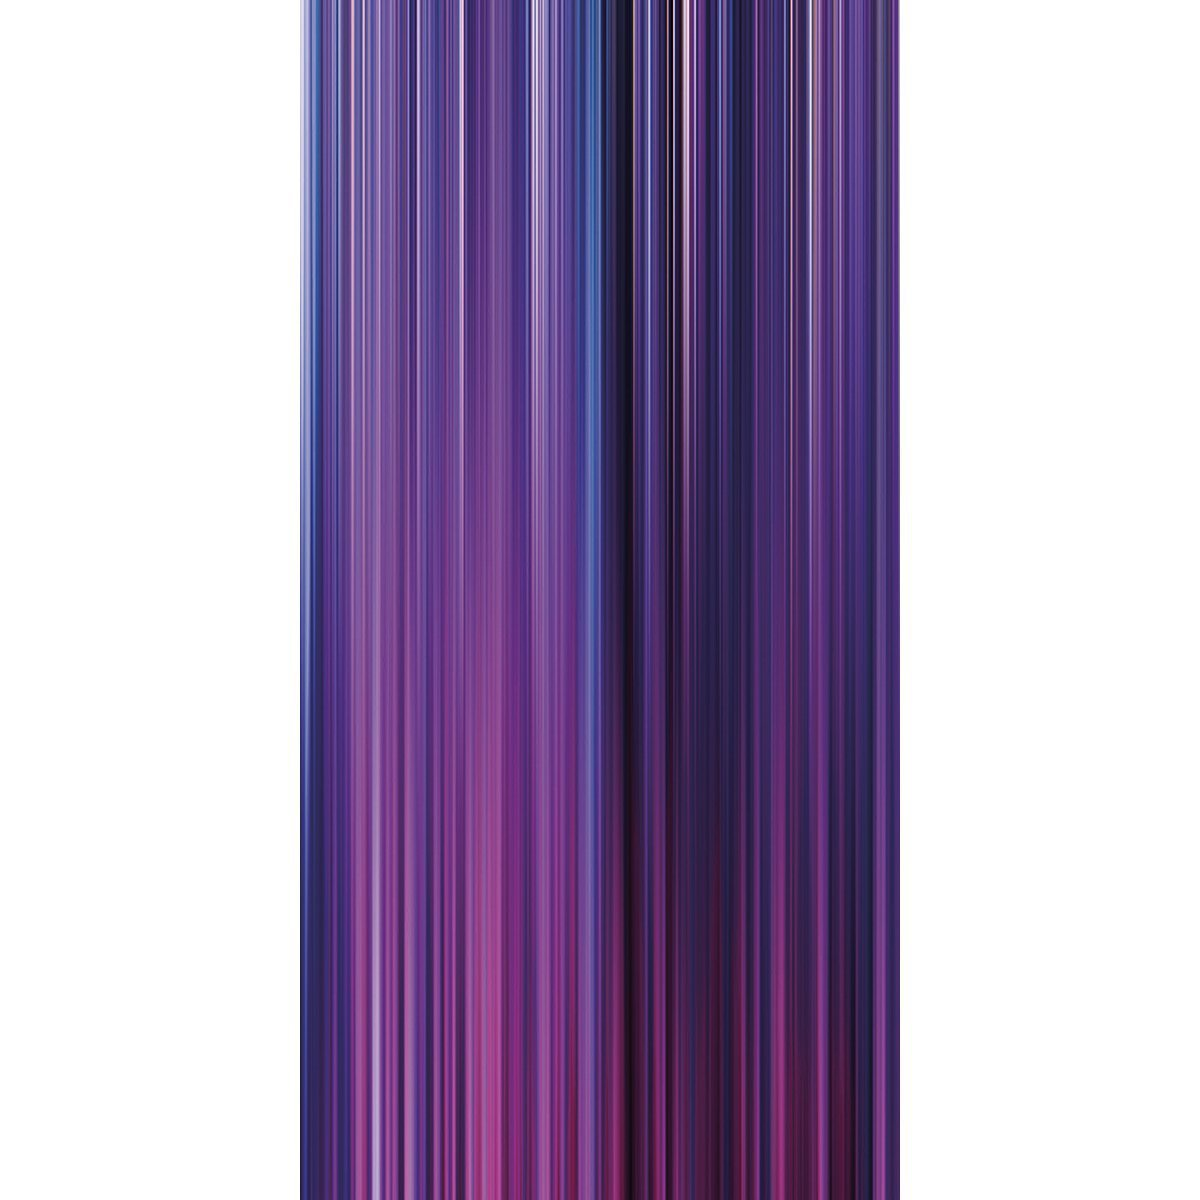 Wall Acoustics Panel 4 Muffle Abstract Mural - Kinetic Purple Panel 4